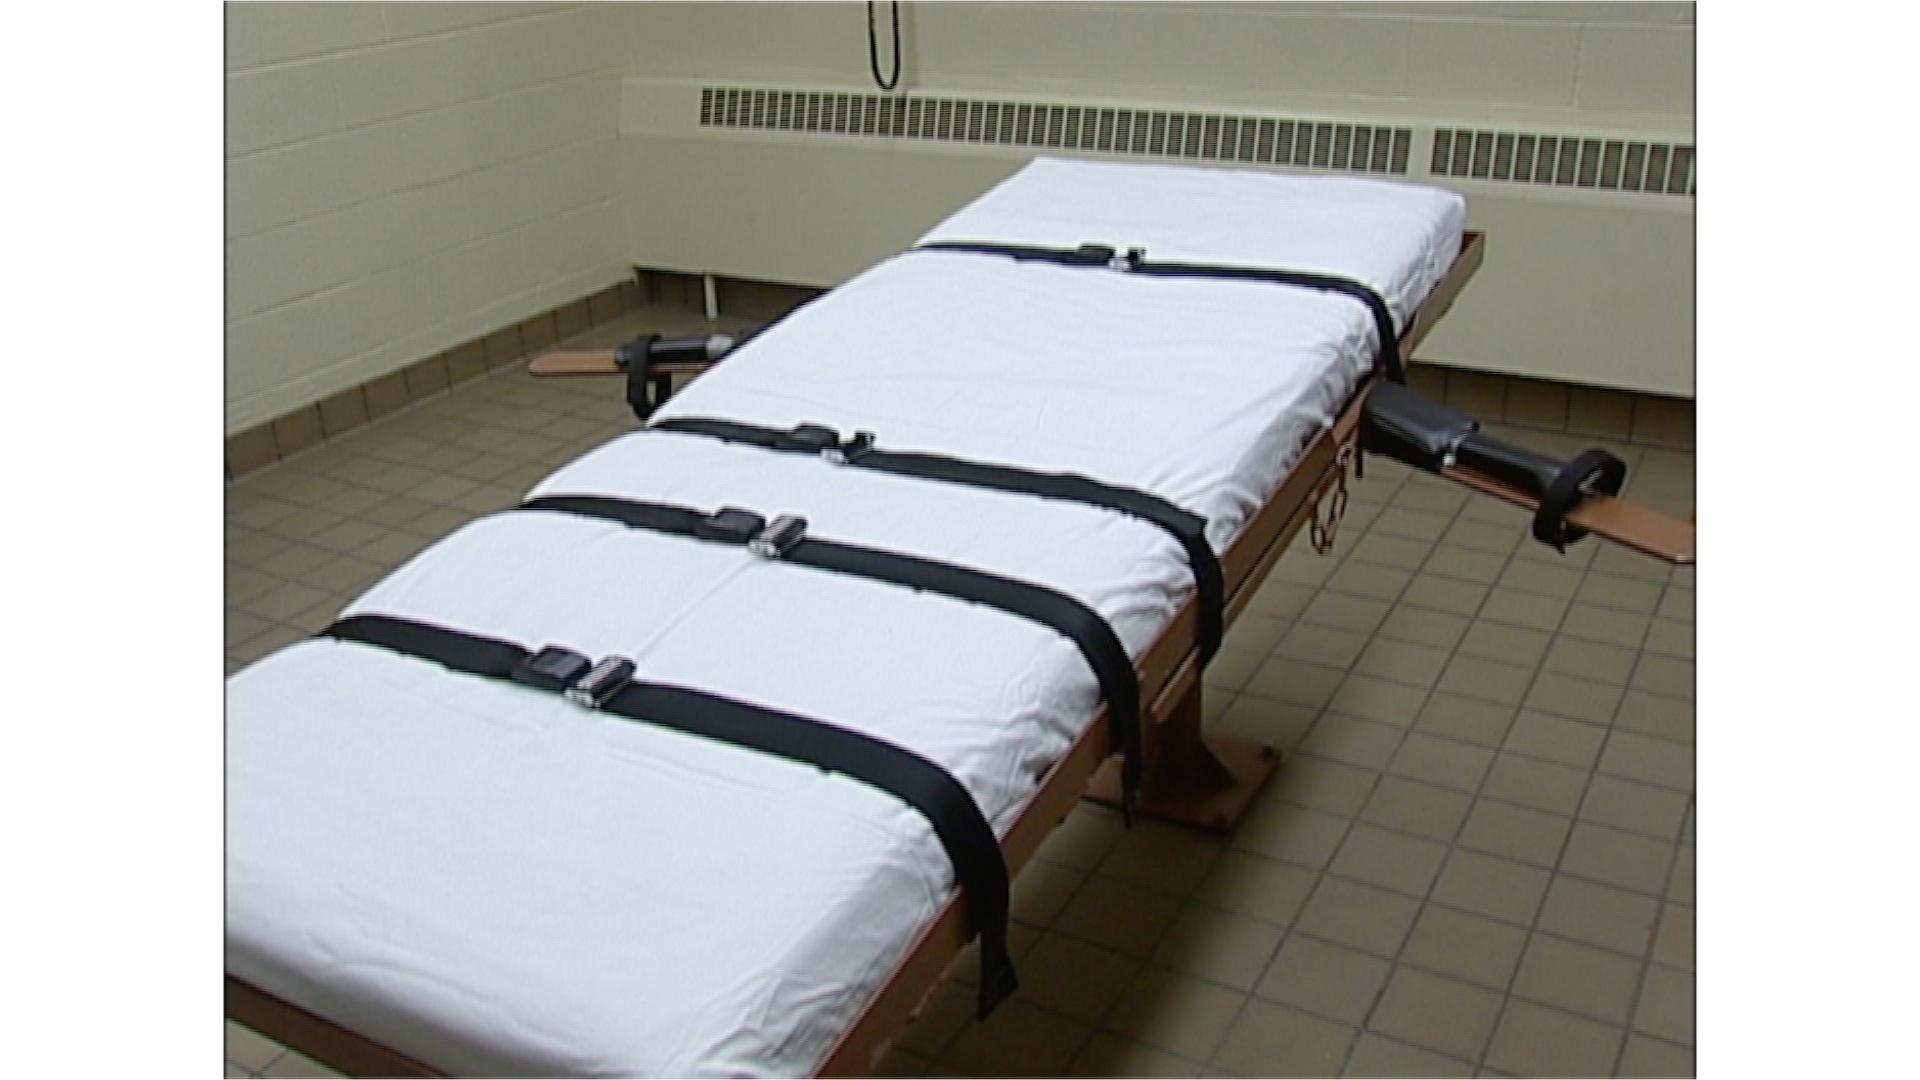 OH  set to execute inmate with walking, breathing problems